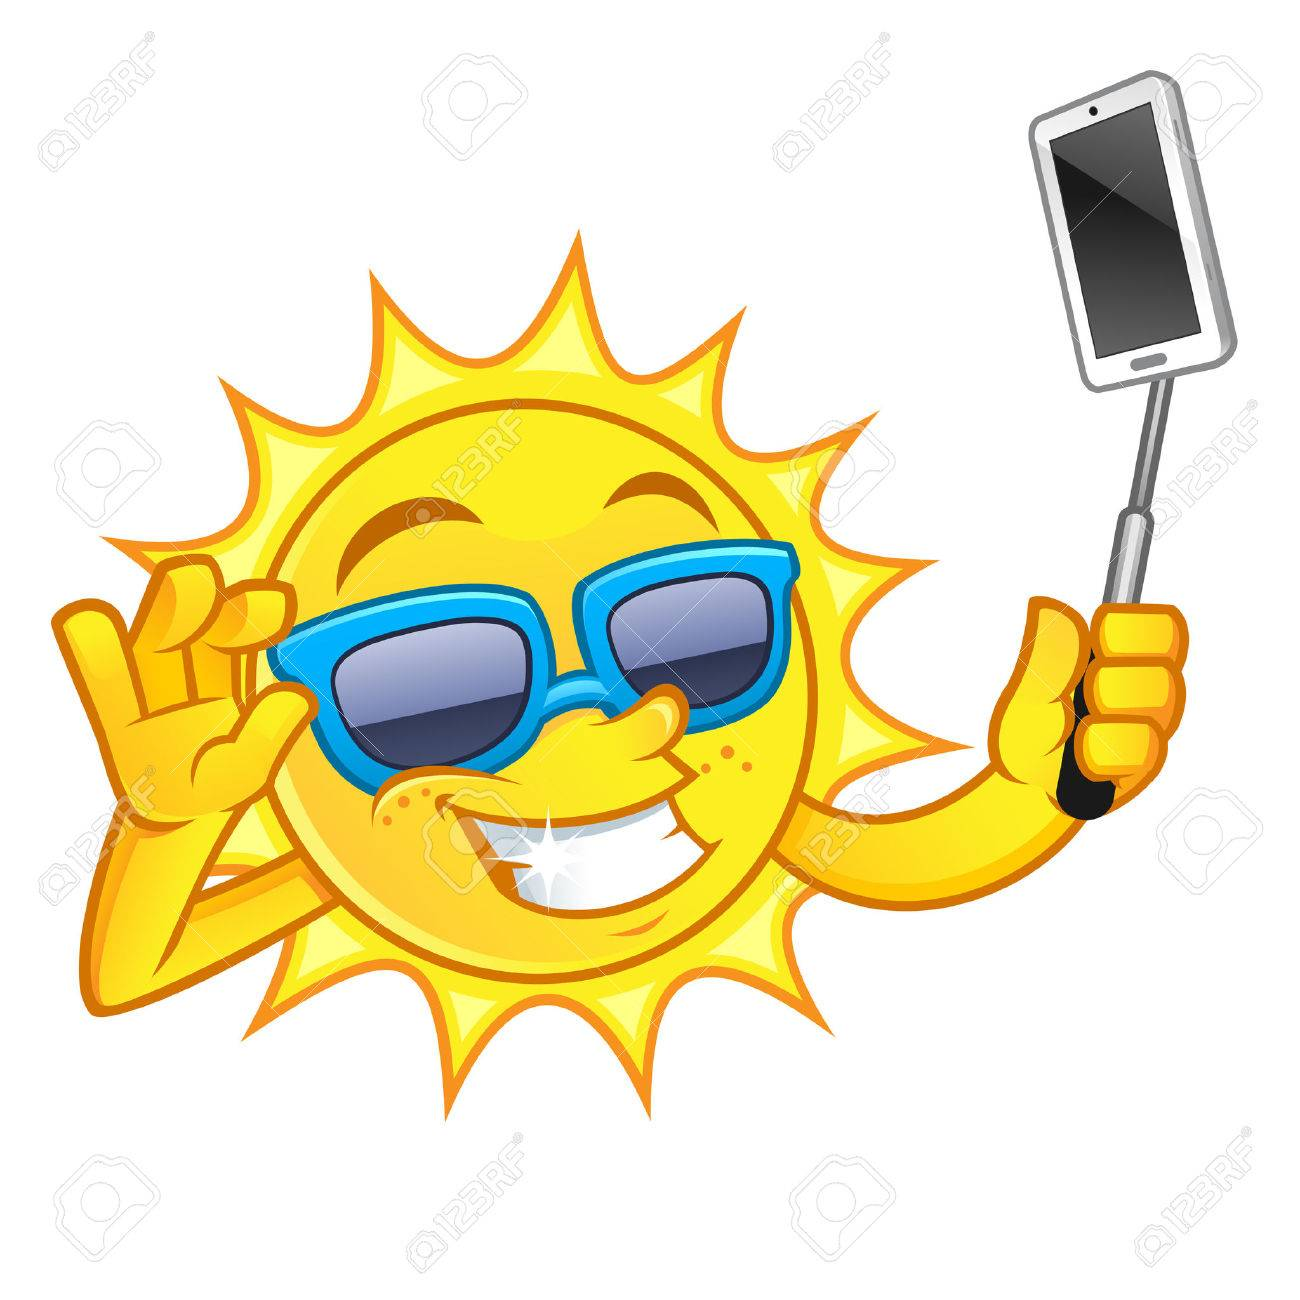 1300x1300 Funny Drawing Of A Sun, I Is Making A Selfie With His Mobile